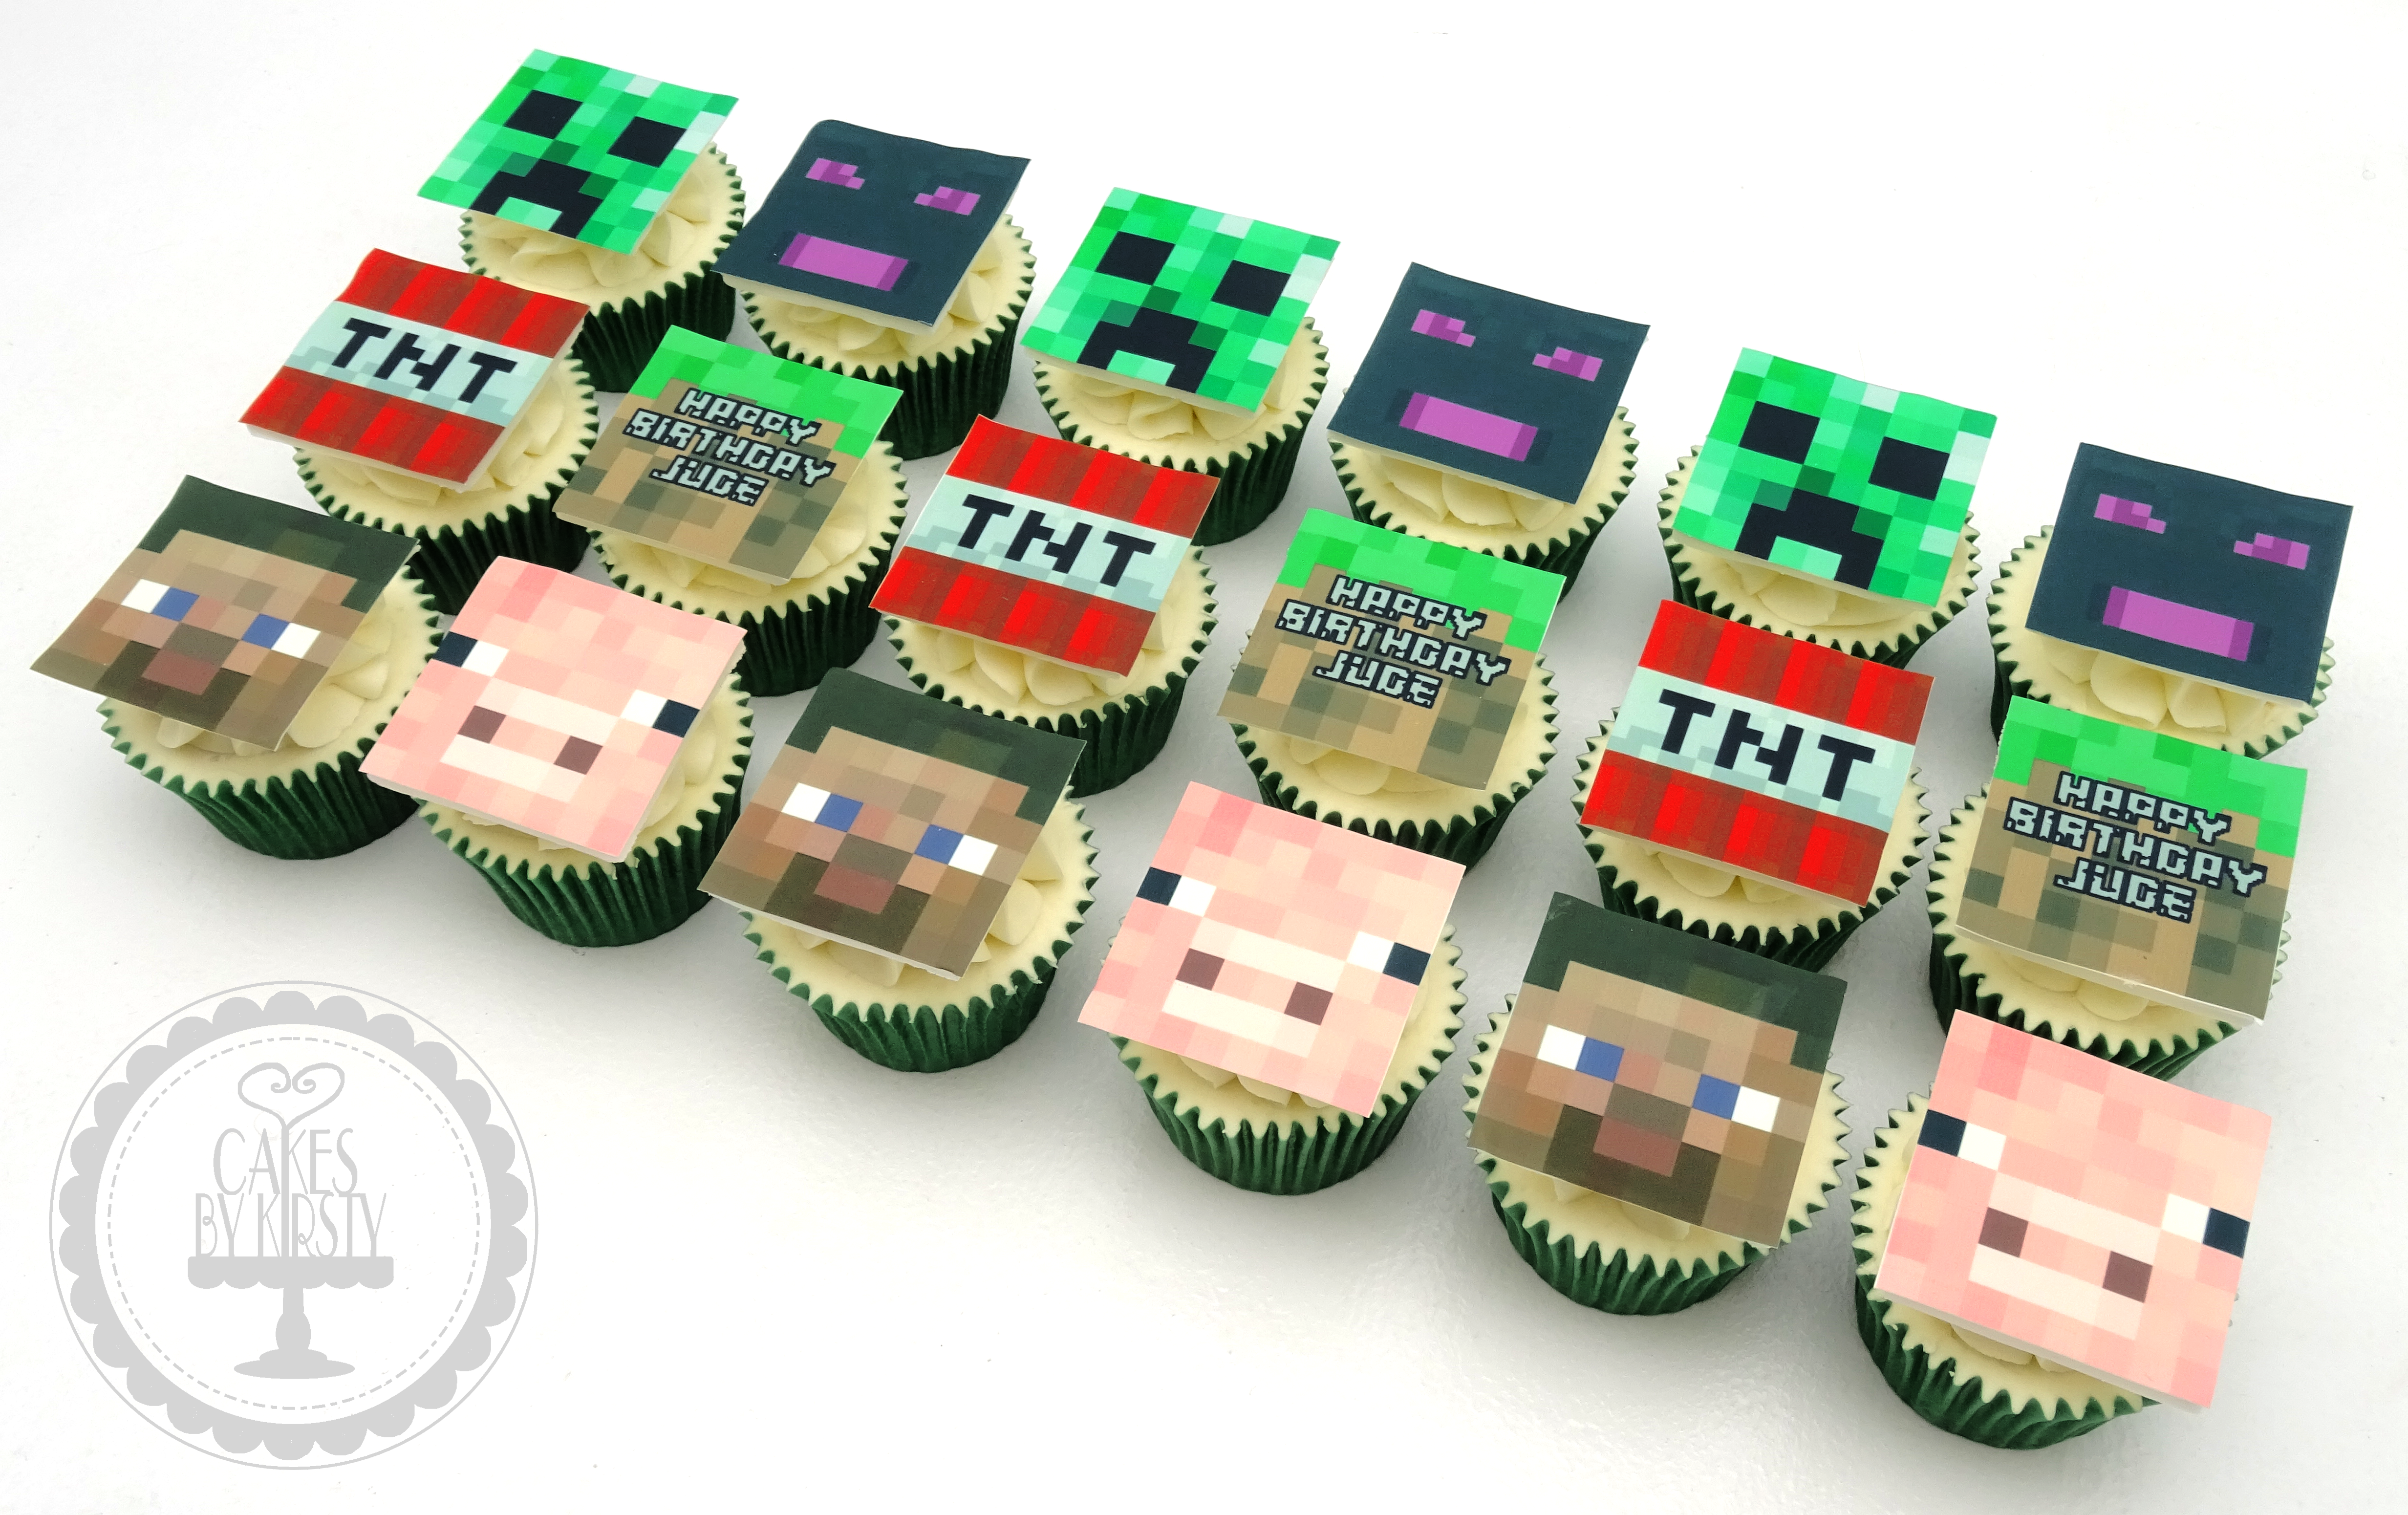 Minecraft Edible Image Cupcakes